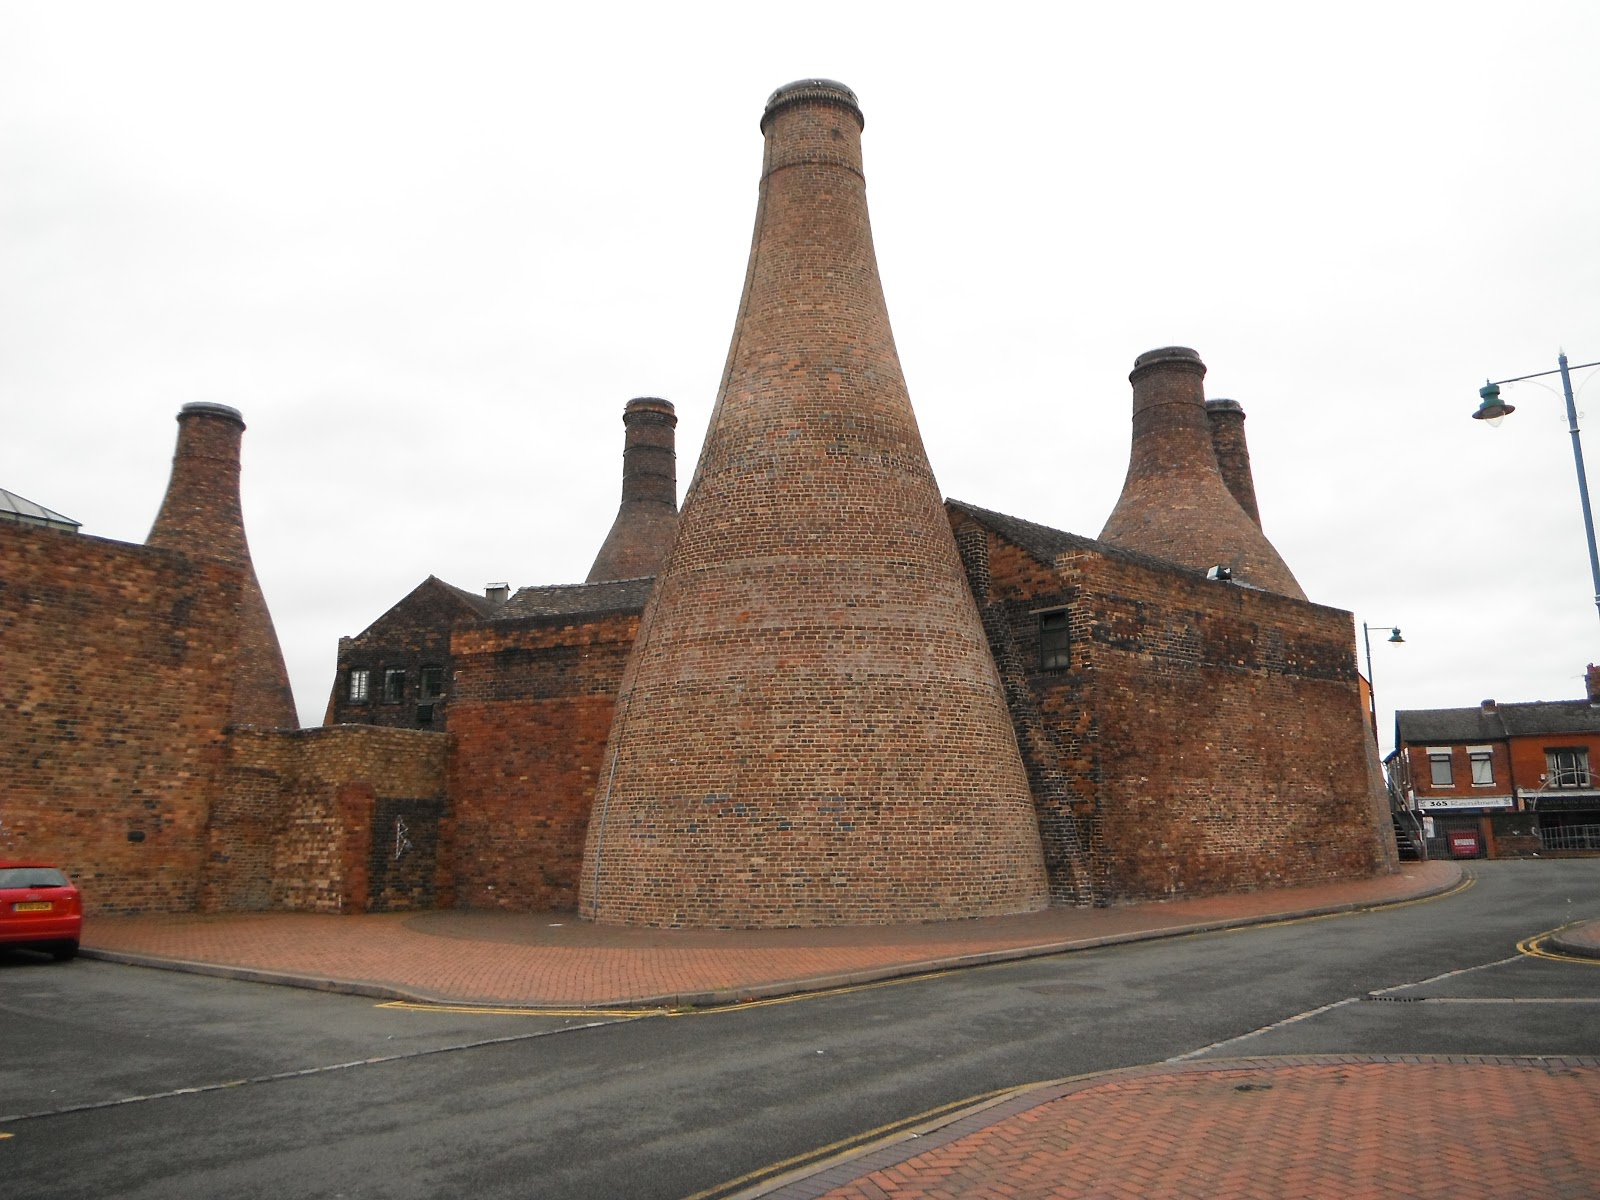 Bottle ovens at the Gladstone Pottery Works